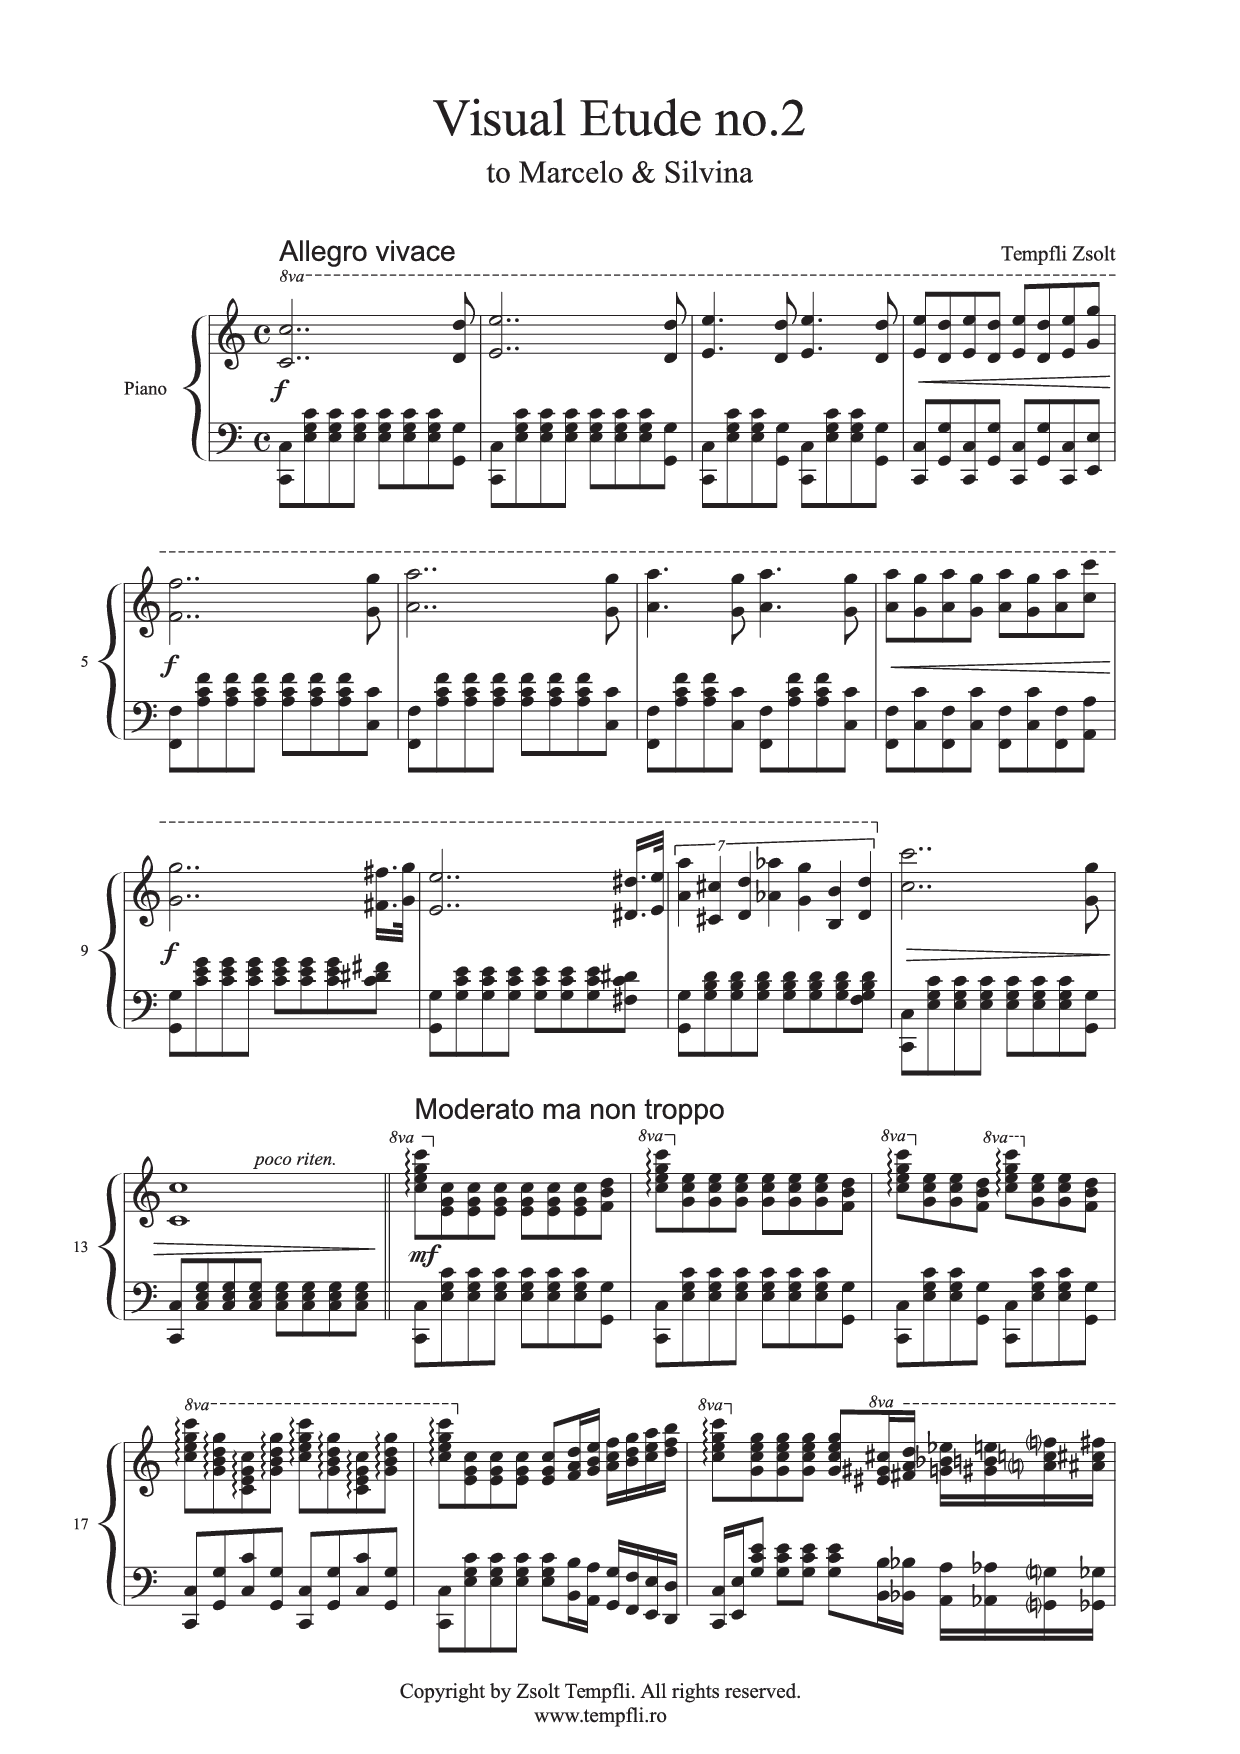 Zsolt Tempfli: Visual Etude no. 2, op. 19 for piano/></p> 					</div><!-- .entry-content -->